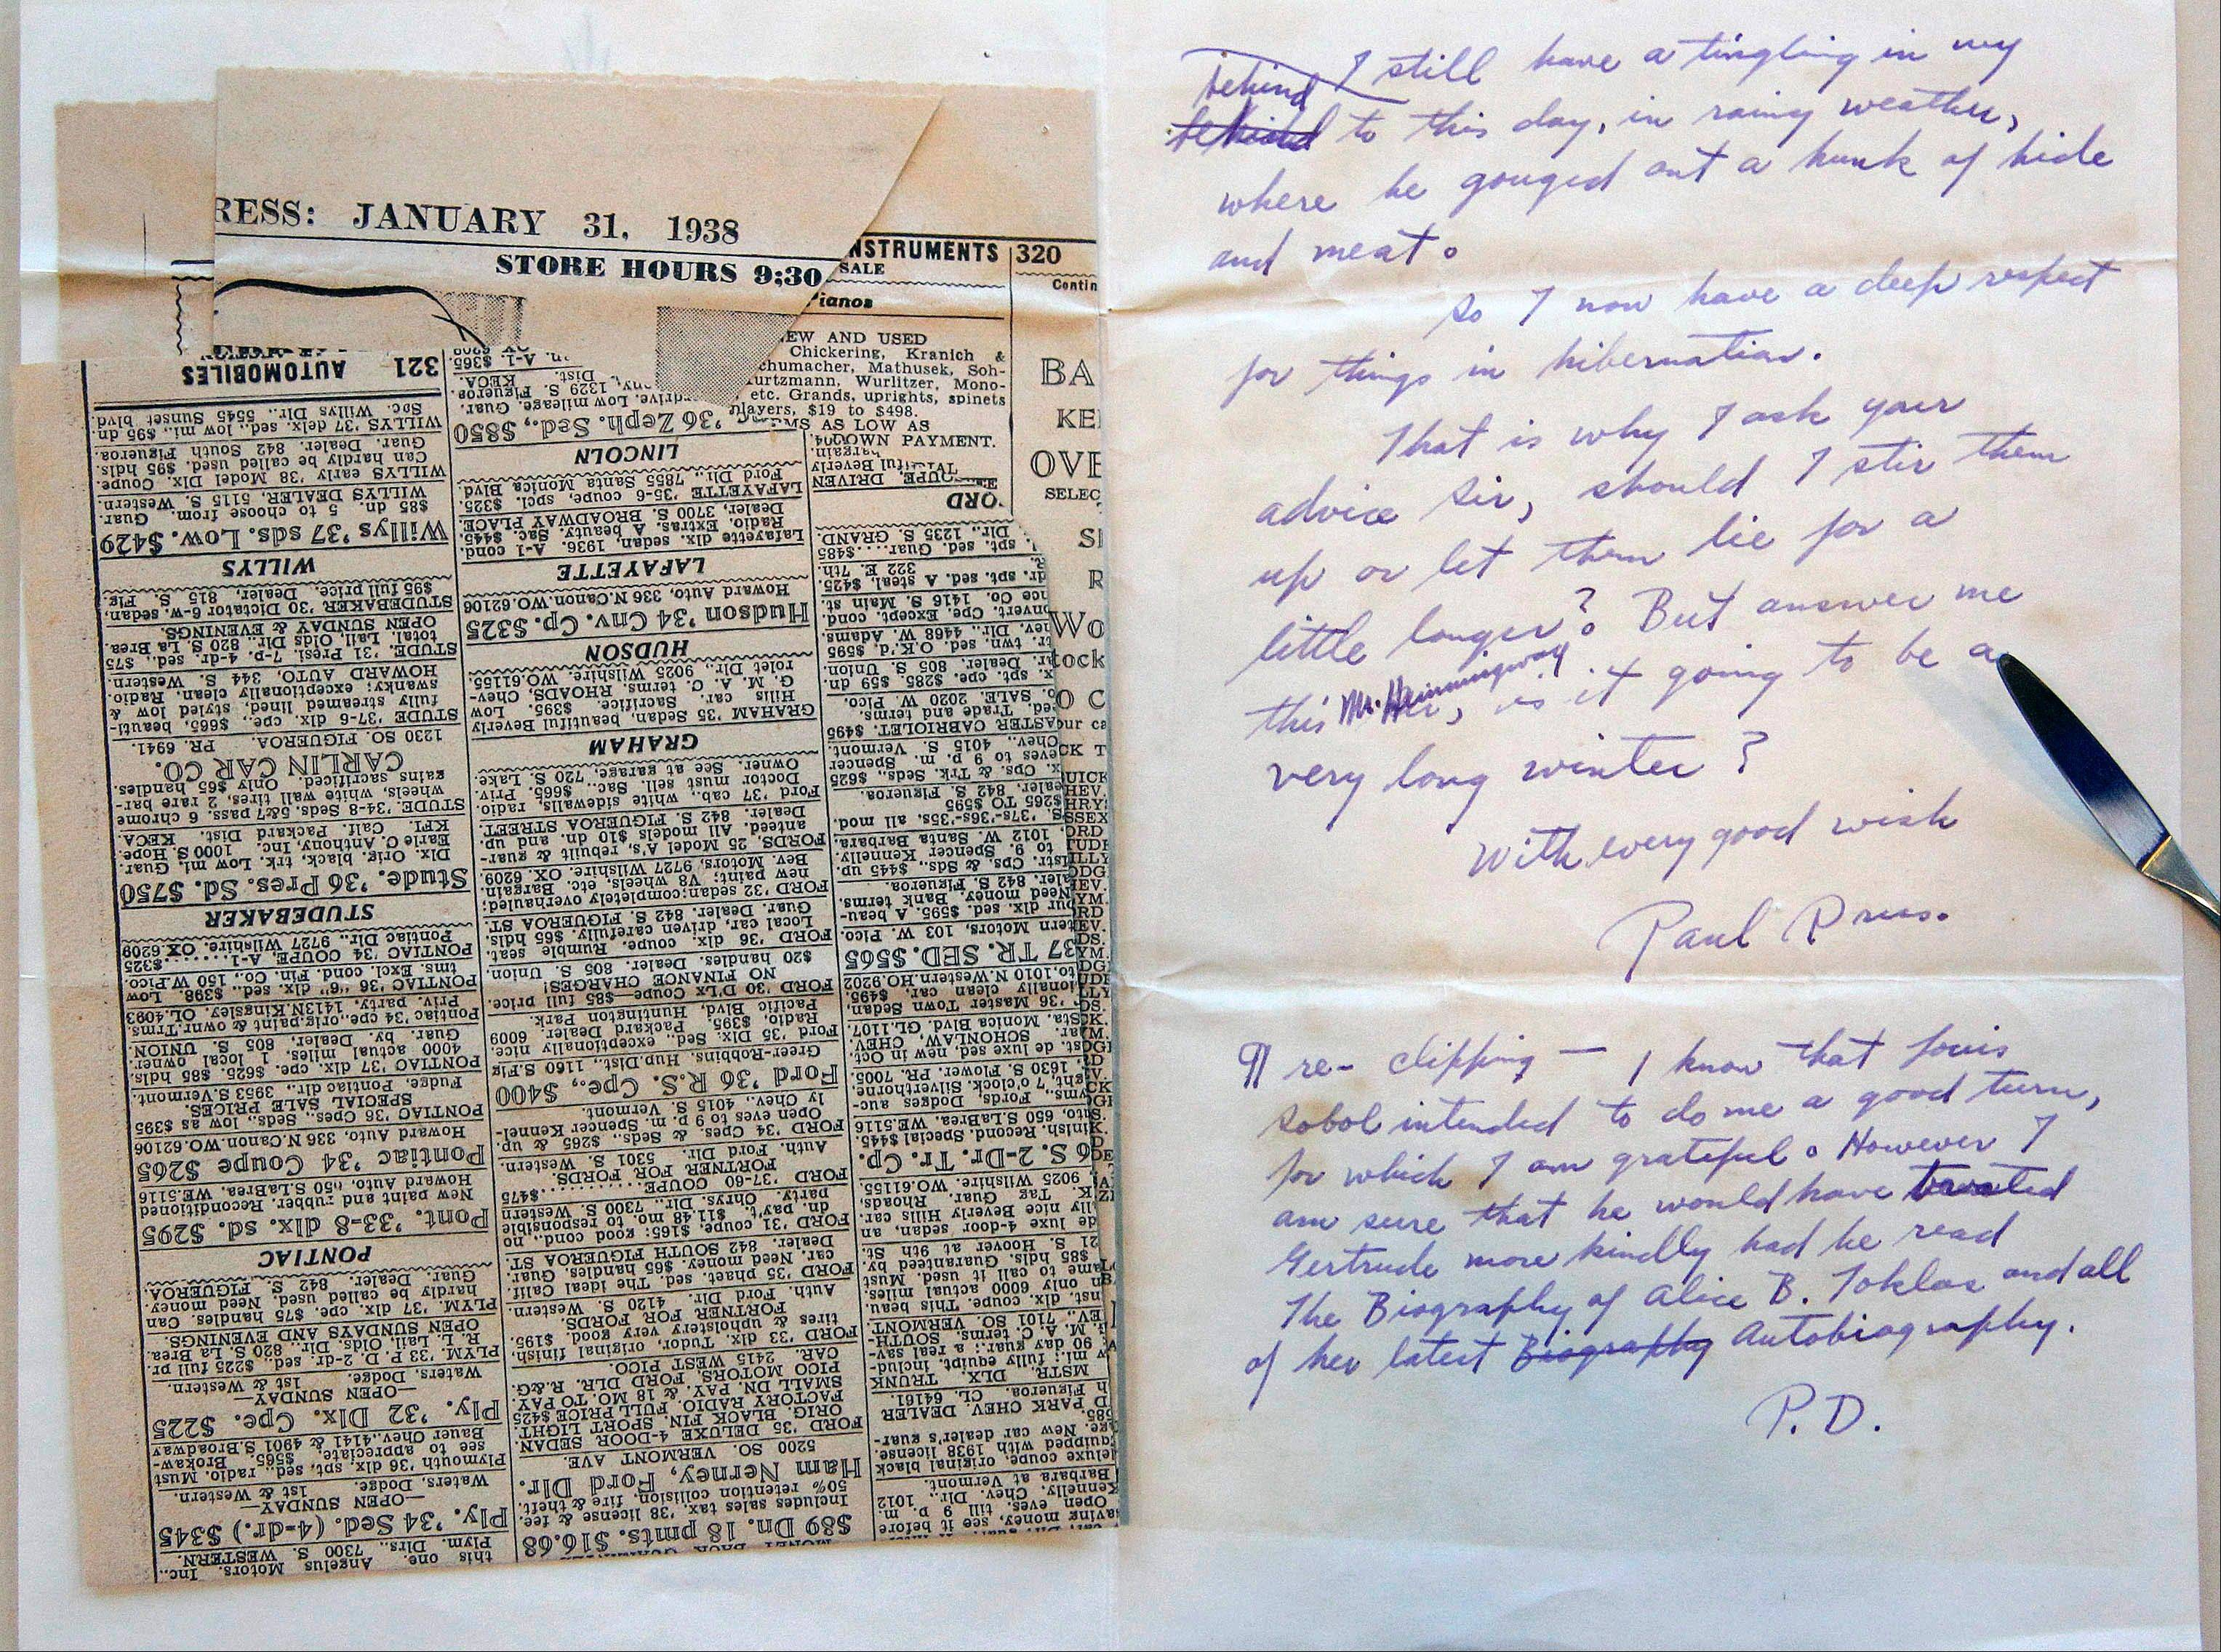 A letter and newspaper clipping sent to Ernest Hemingway from writer Paul Drus in 1938.